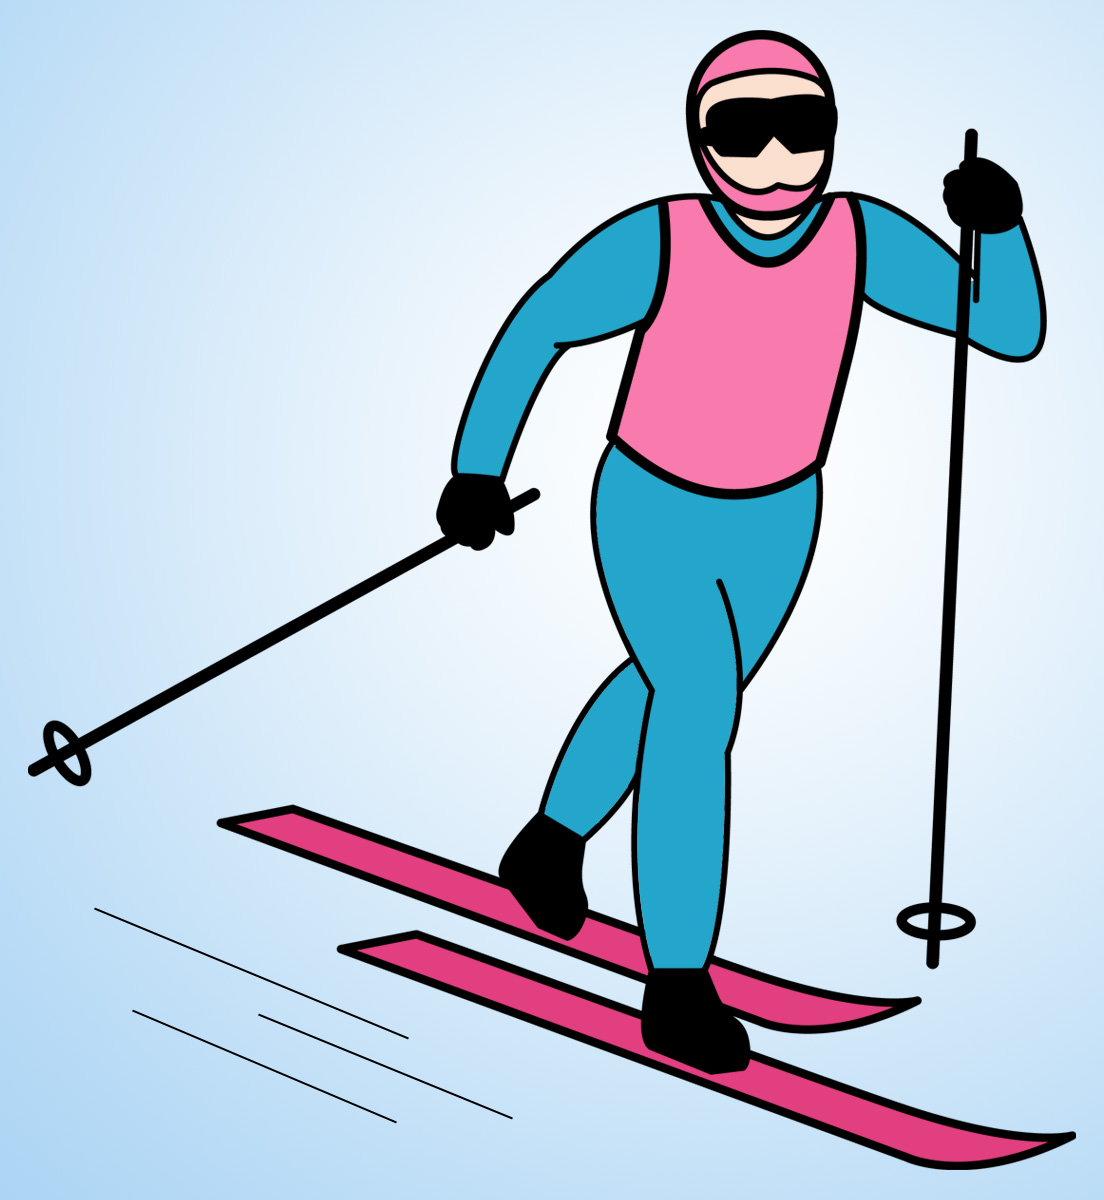 Snow Skiing Background Clipart.